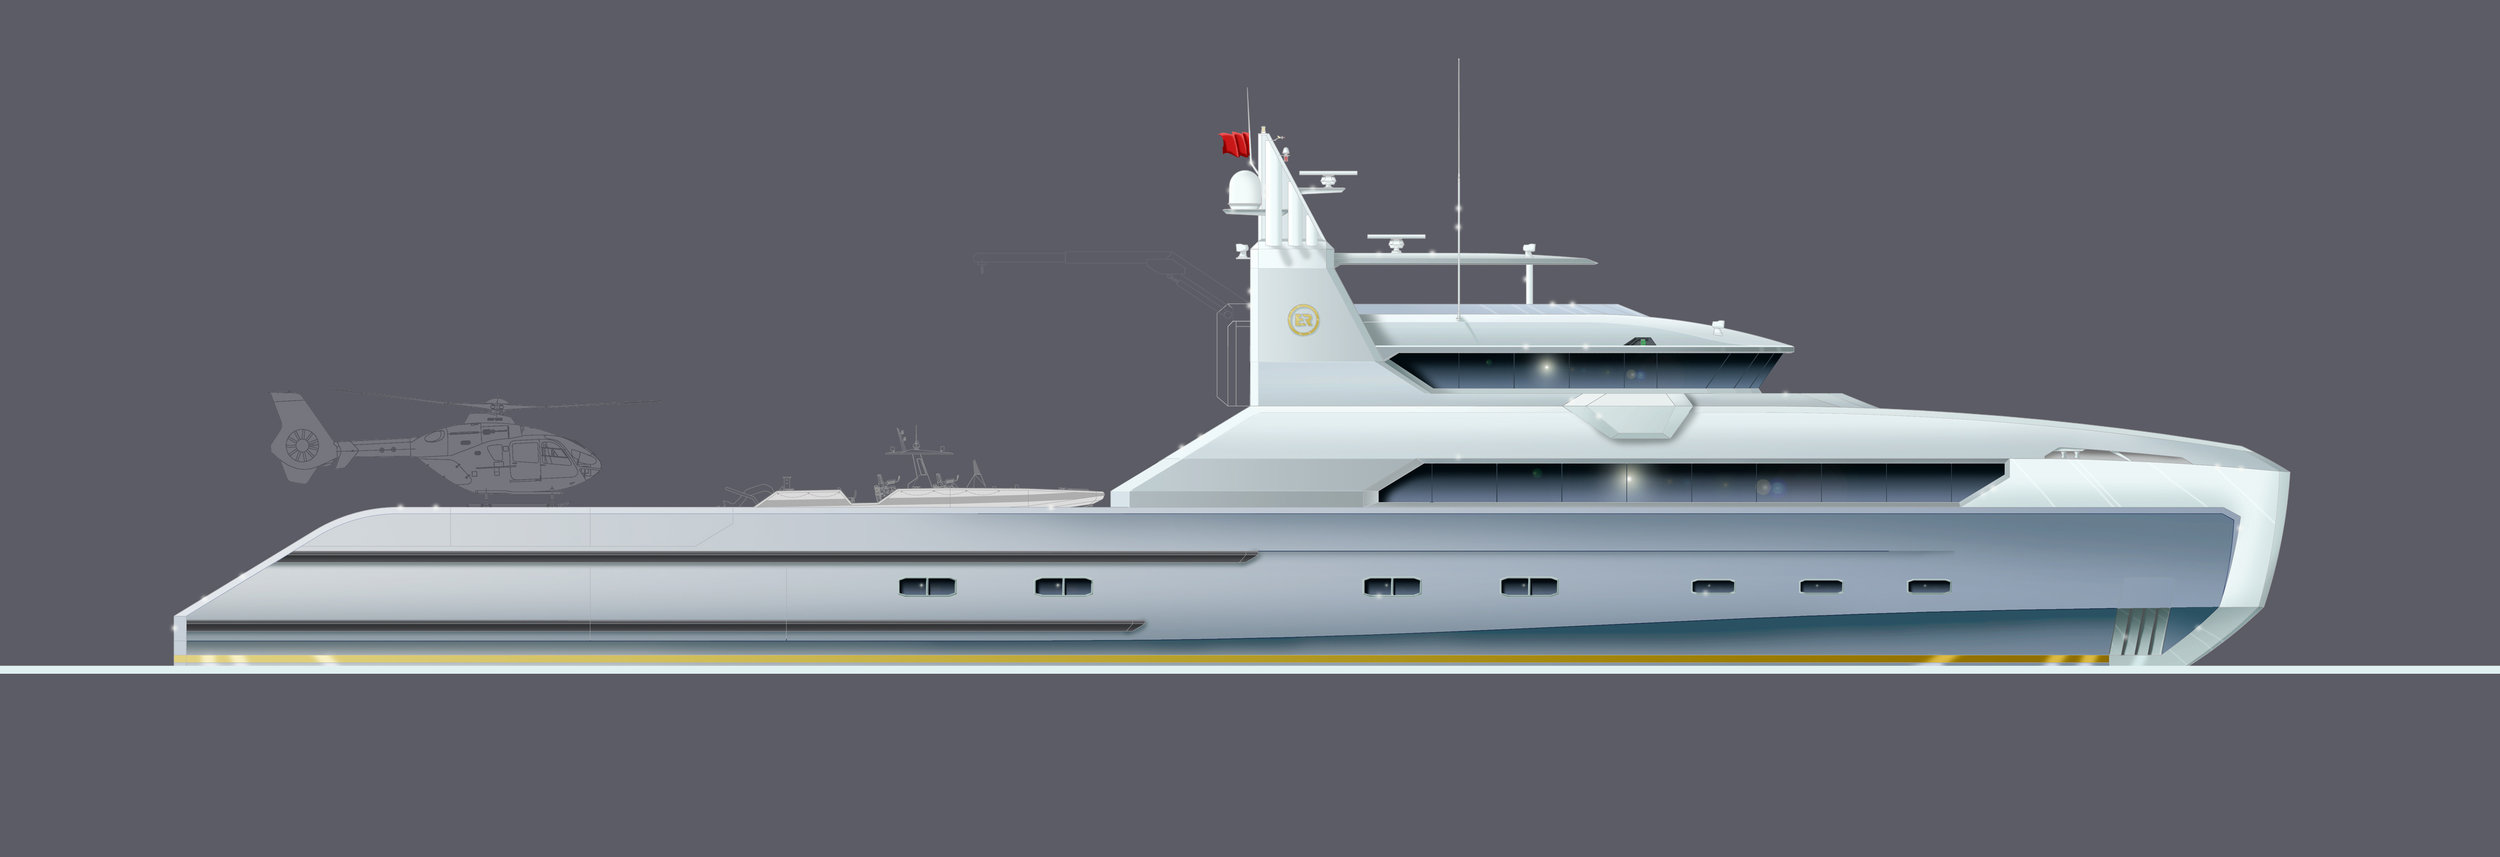 Light Hull Combined 3.jpg